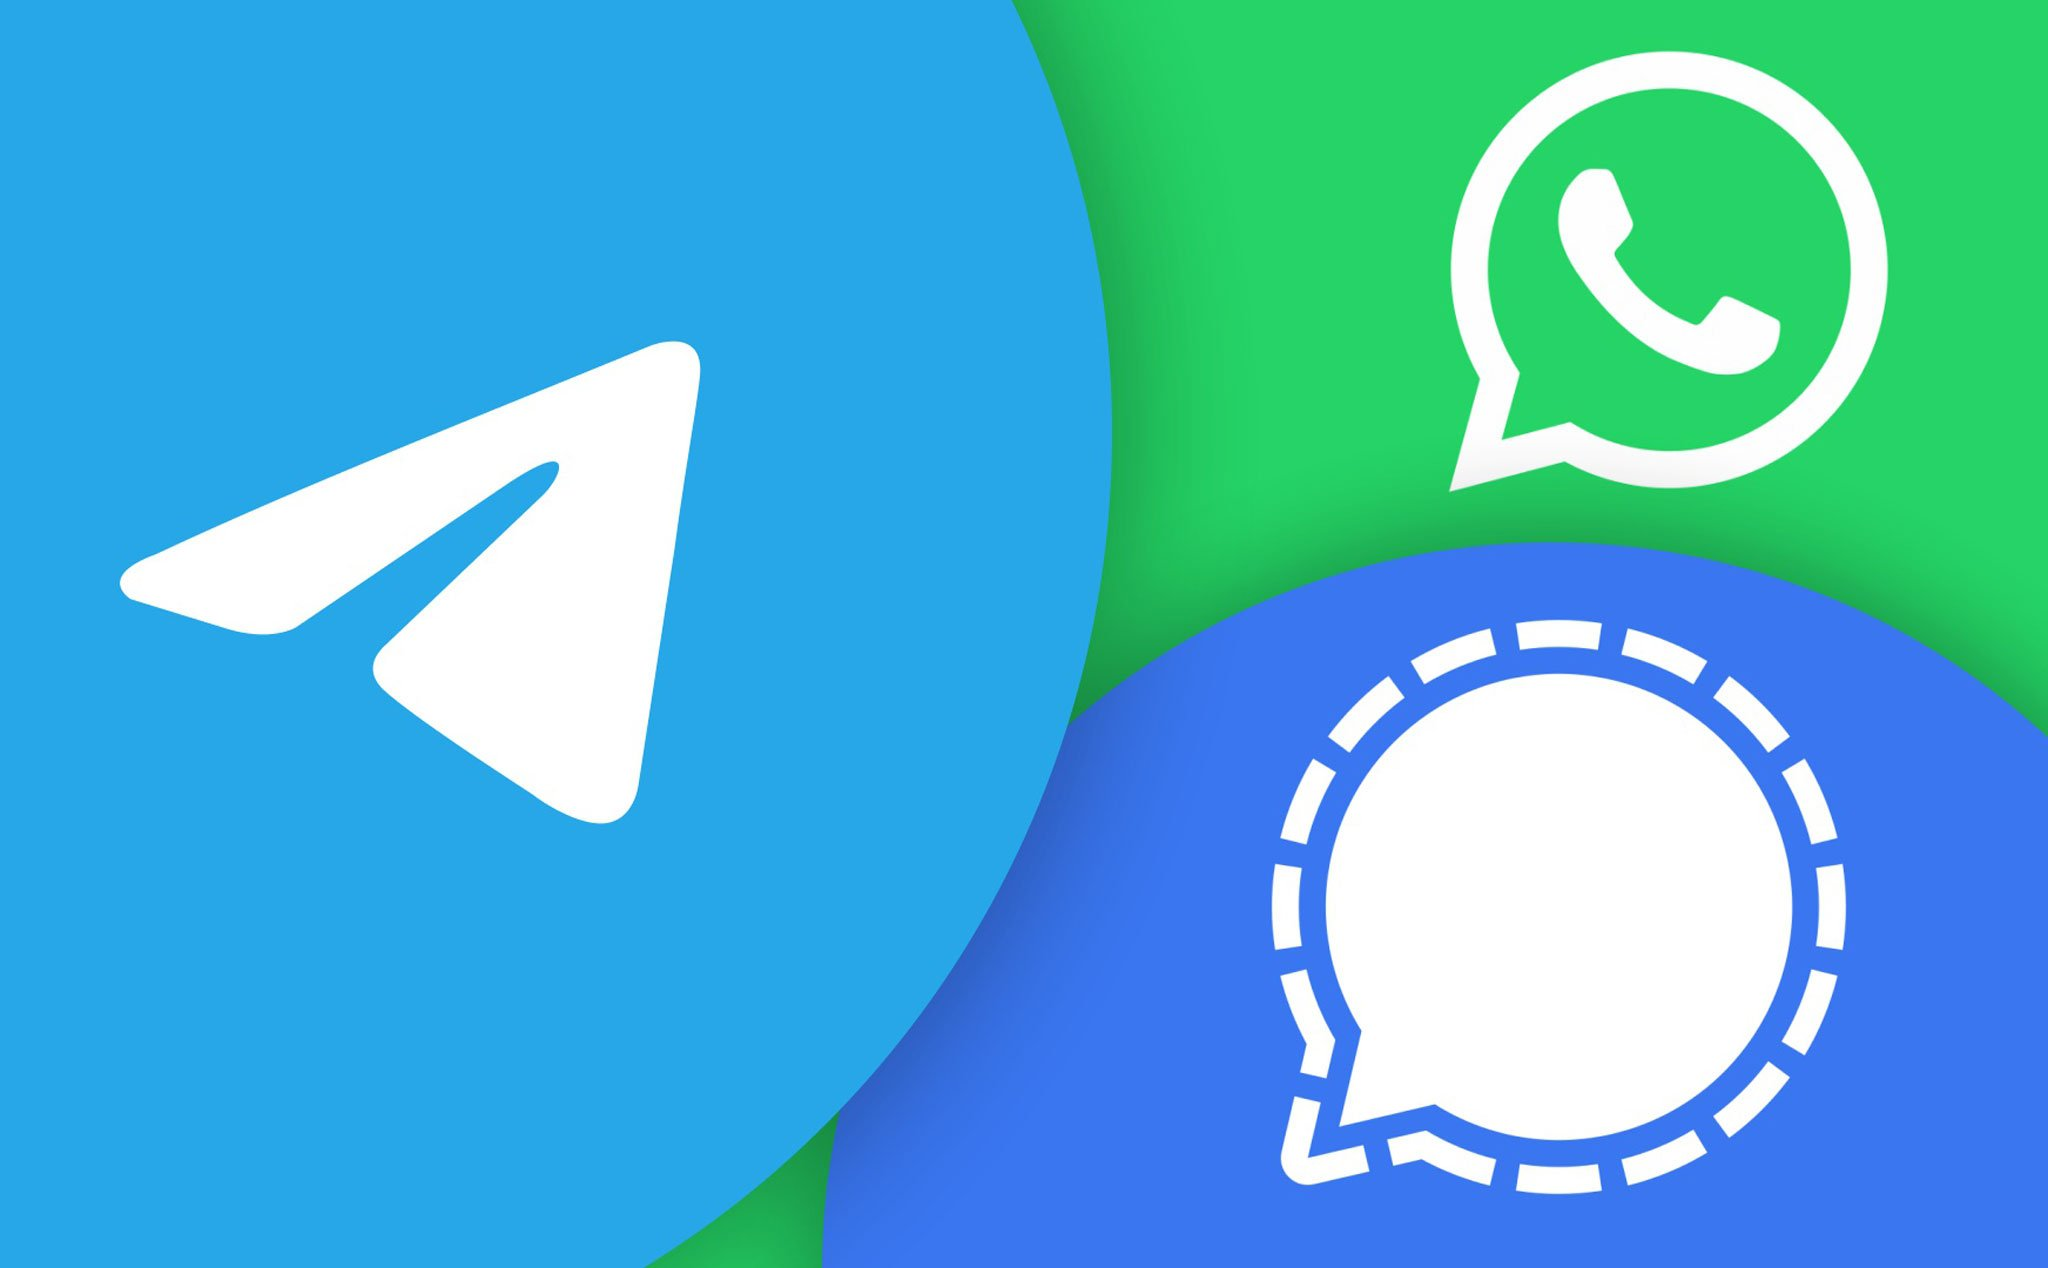 January 2021: Telegram becomes the most popular application in the world